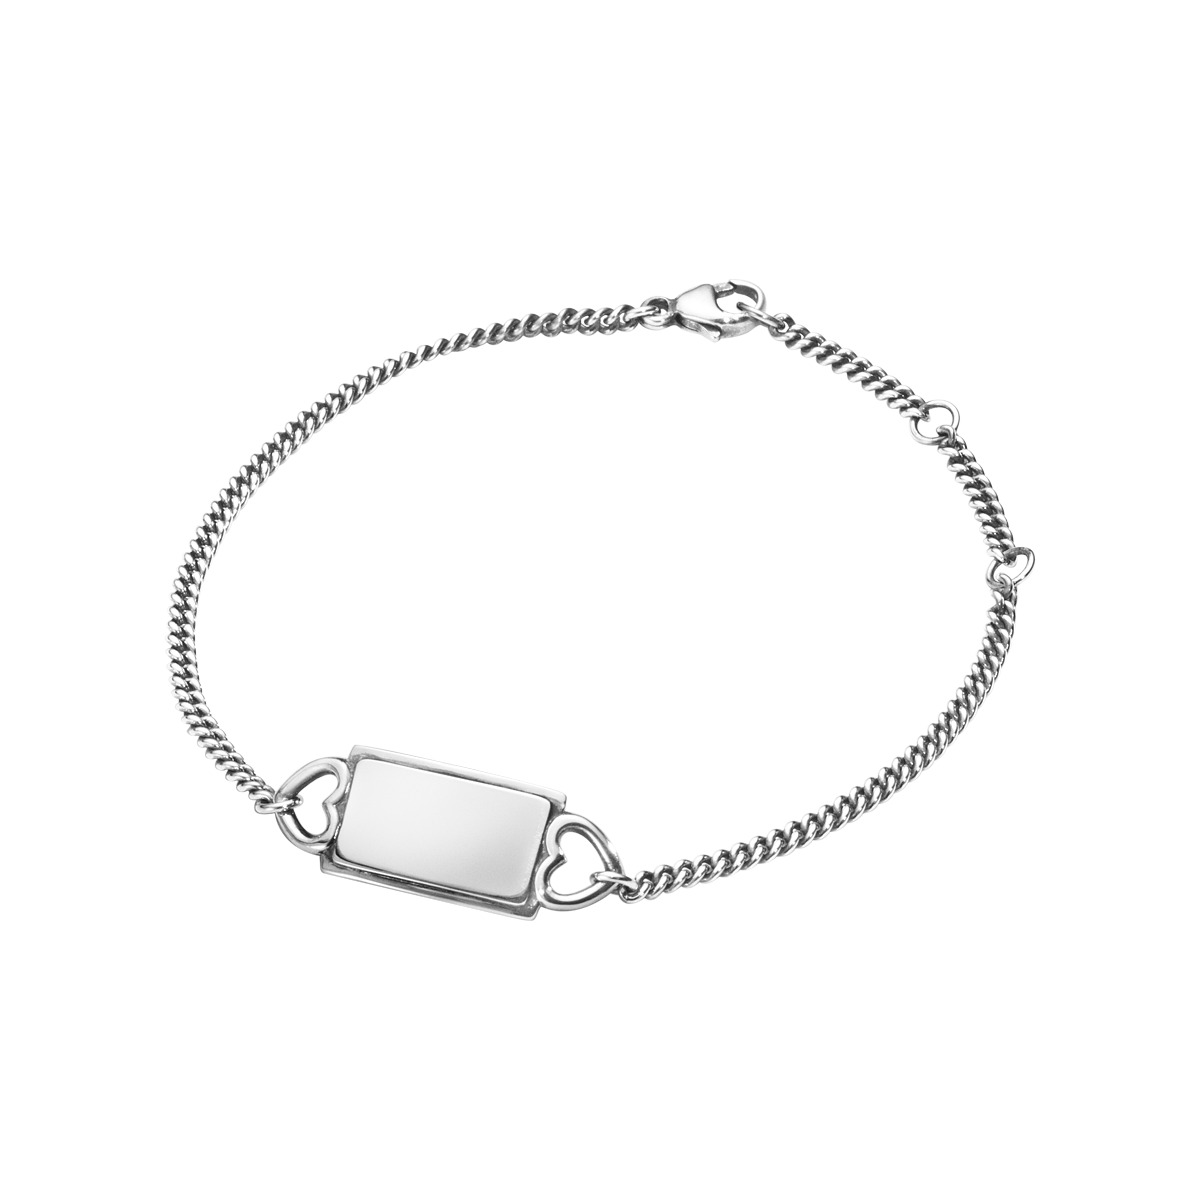 Image of   Georg Jensen HEARTS OF GEORG JENSEN armbånd - 3531326 18 centimeter